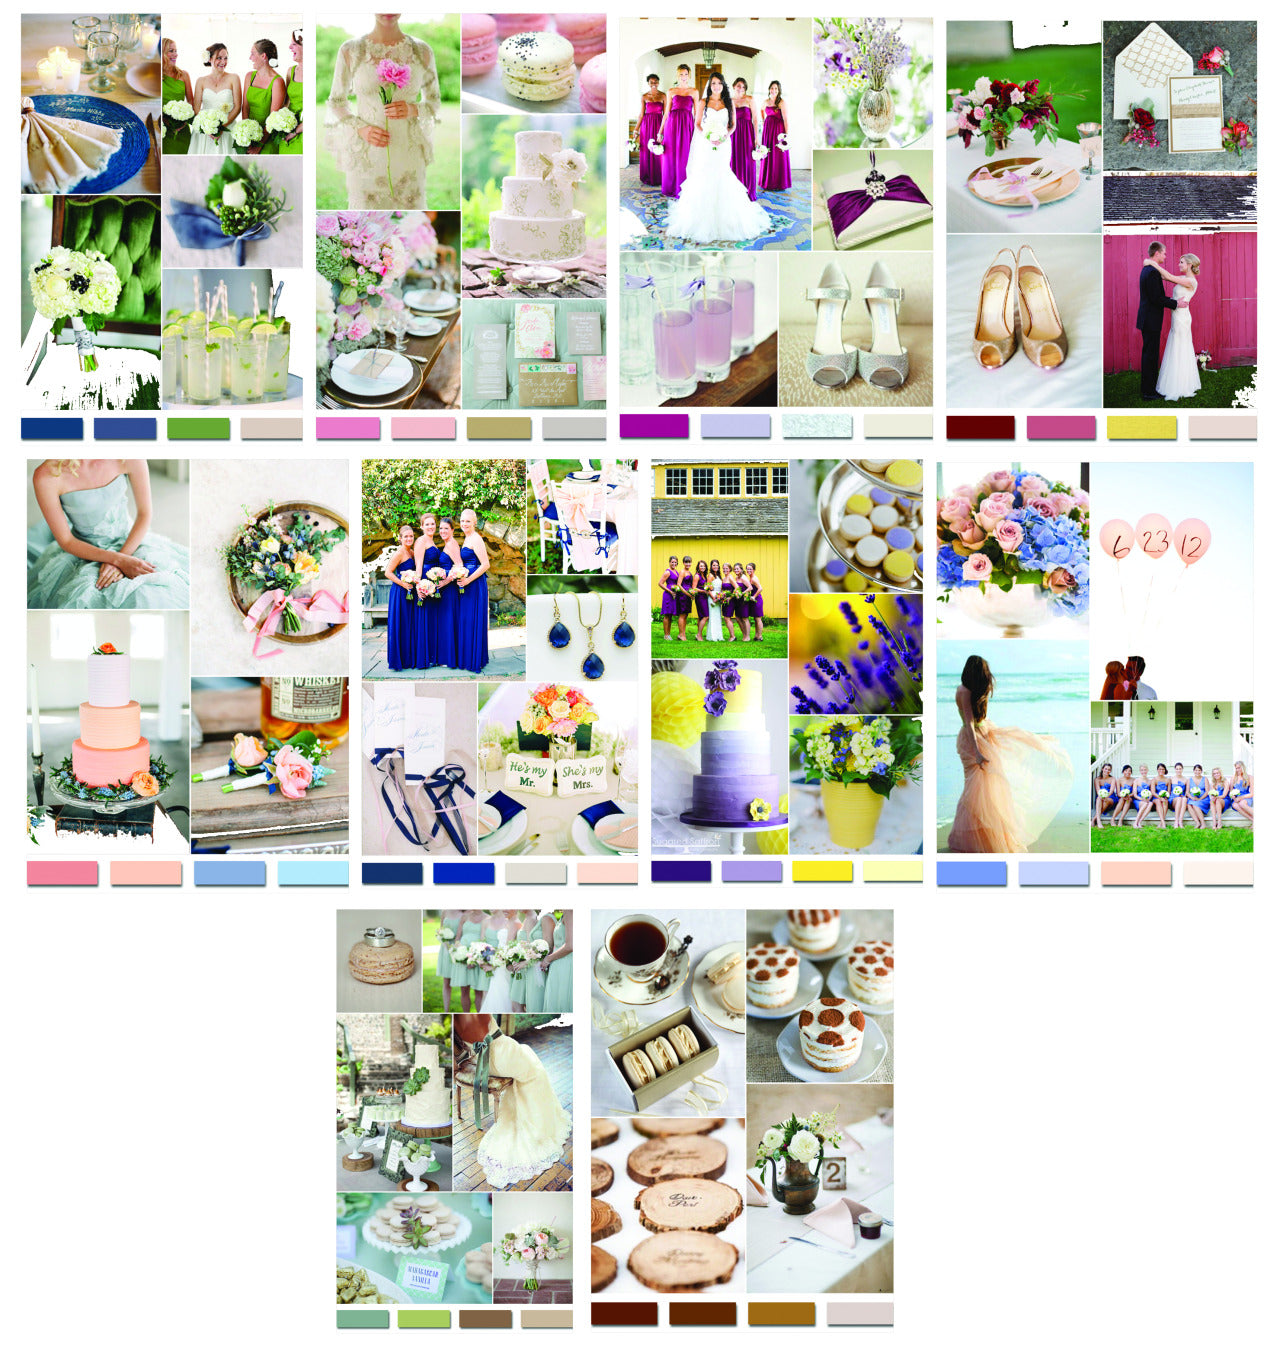 How To Choose A Wedding Color Theme Margaritas Bakery